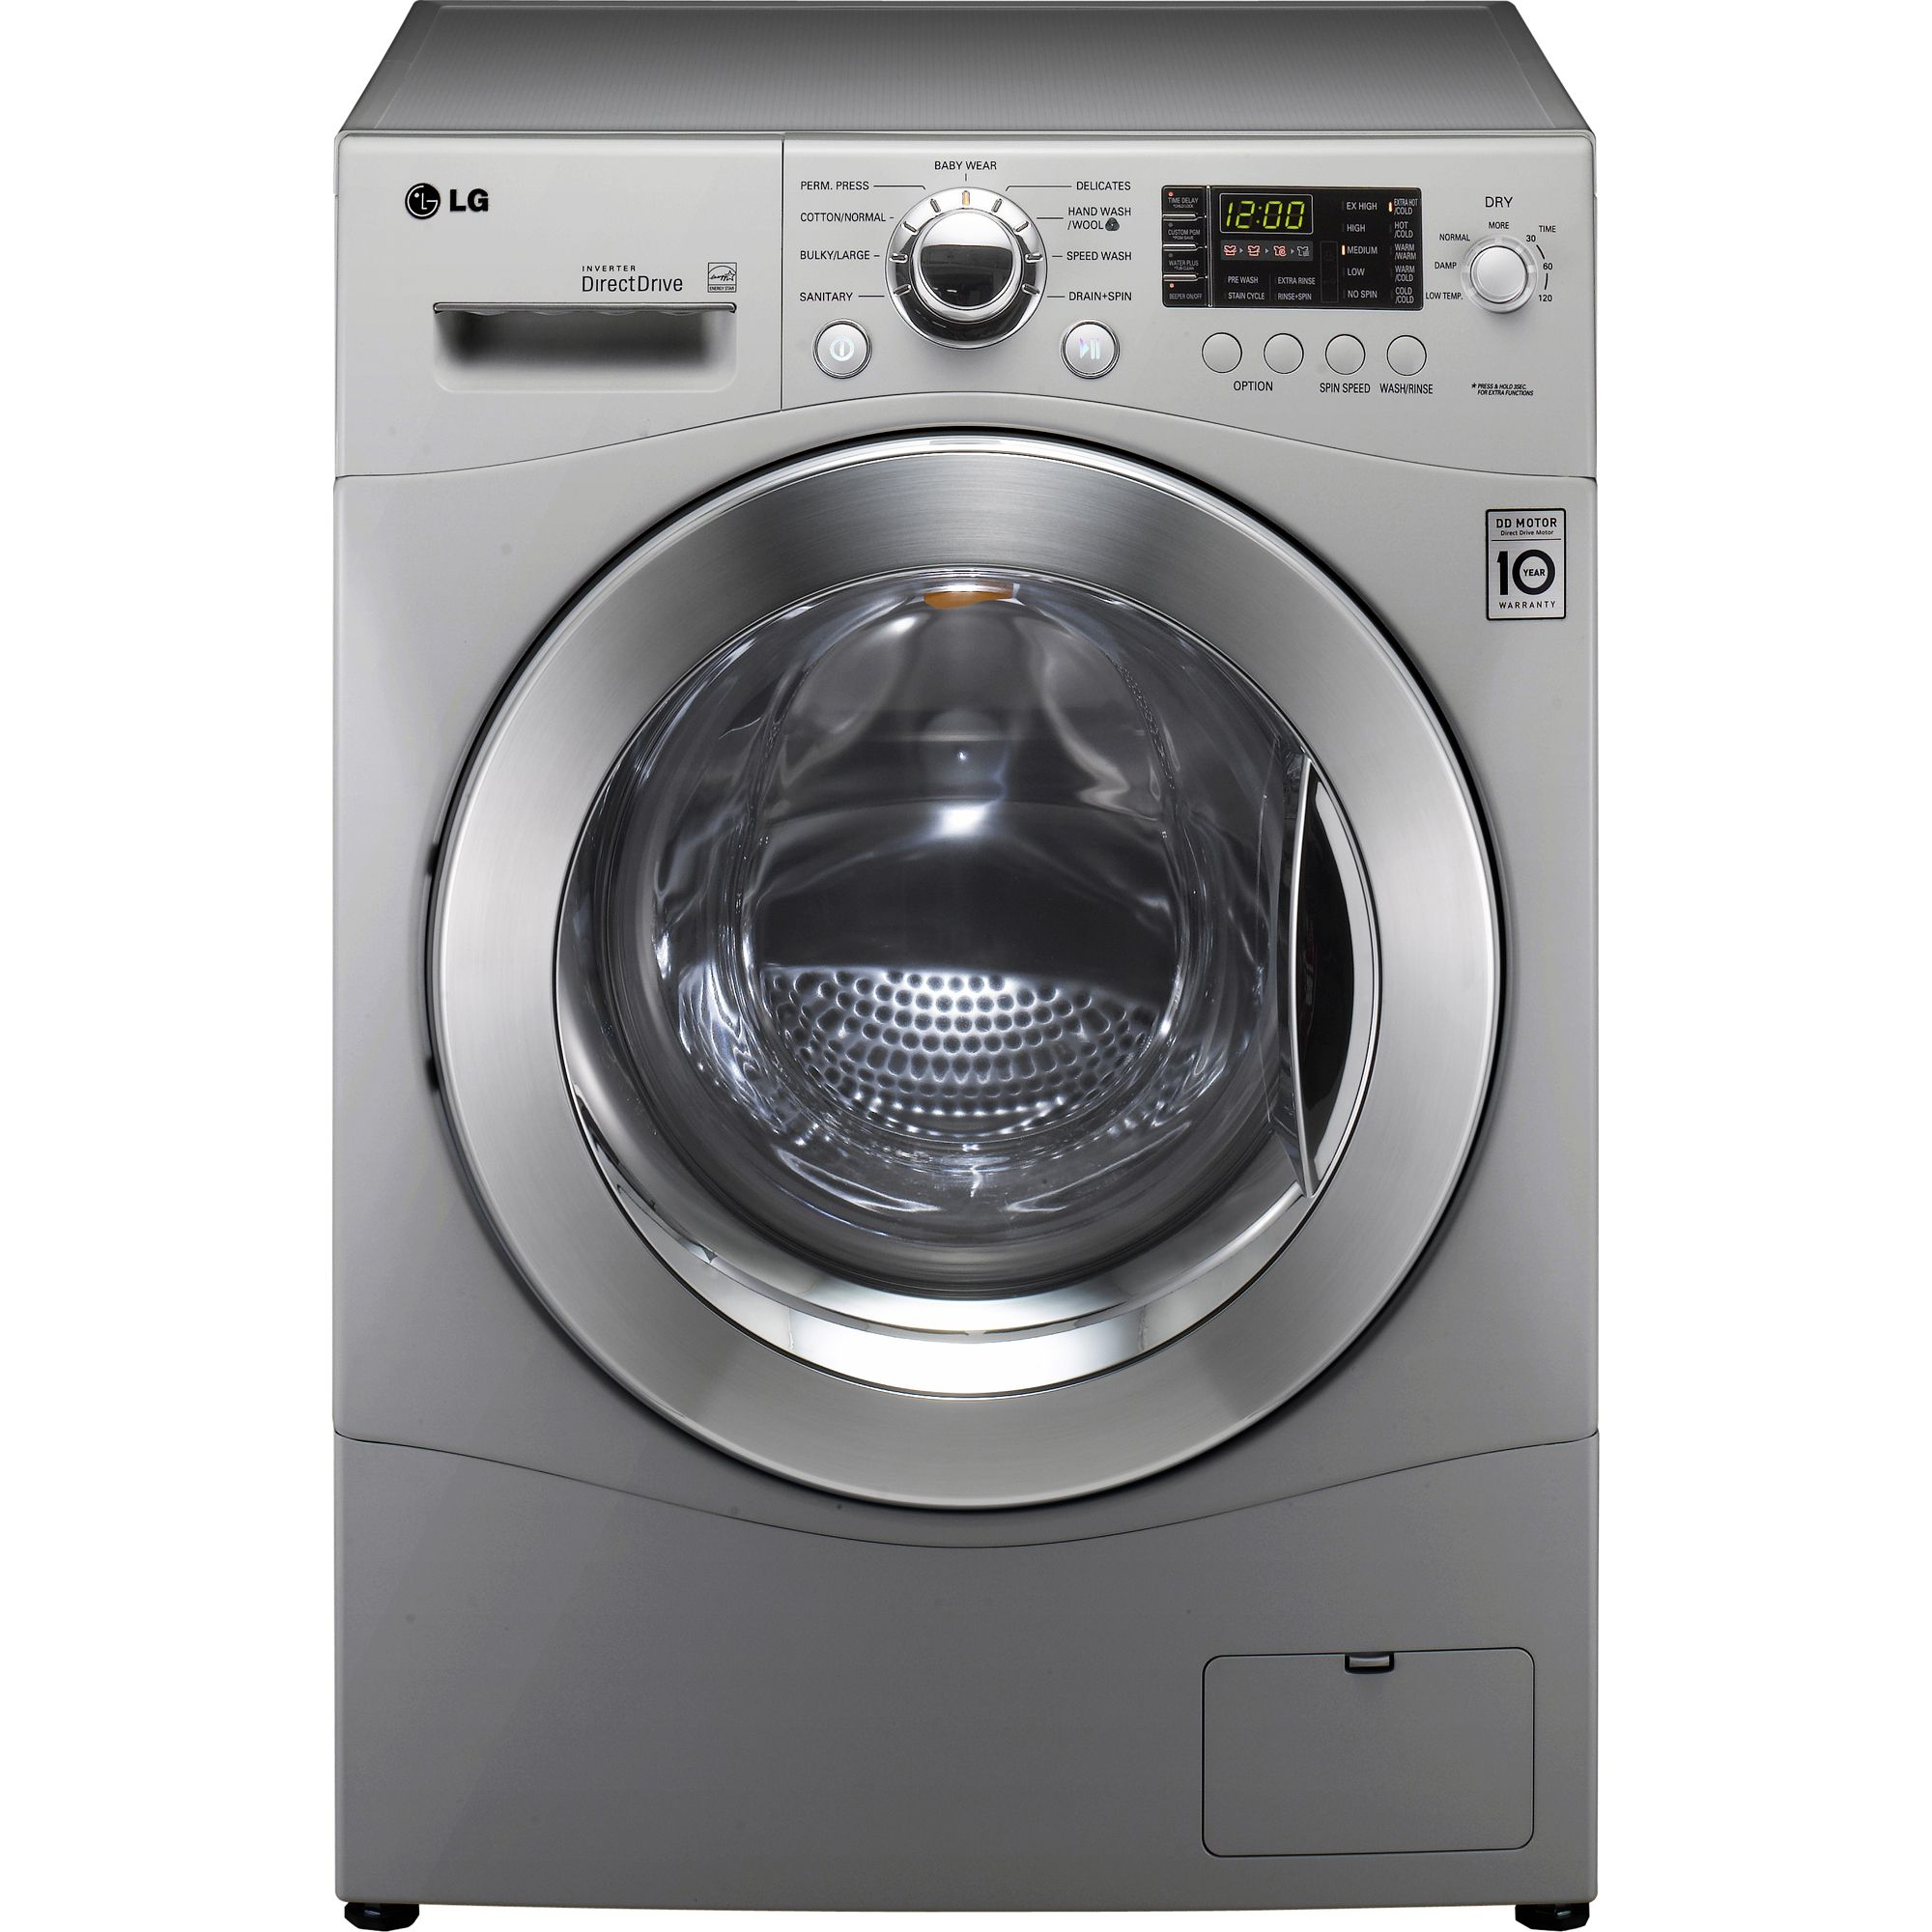 Dryer Repair company west LA